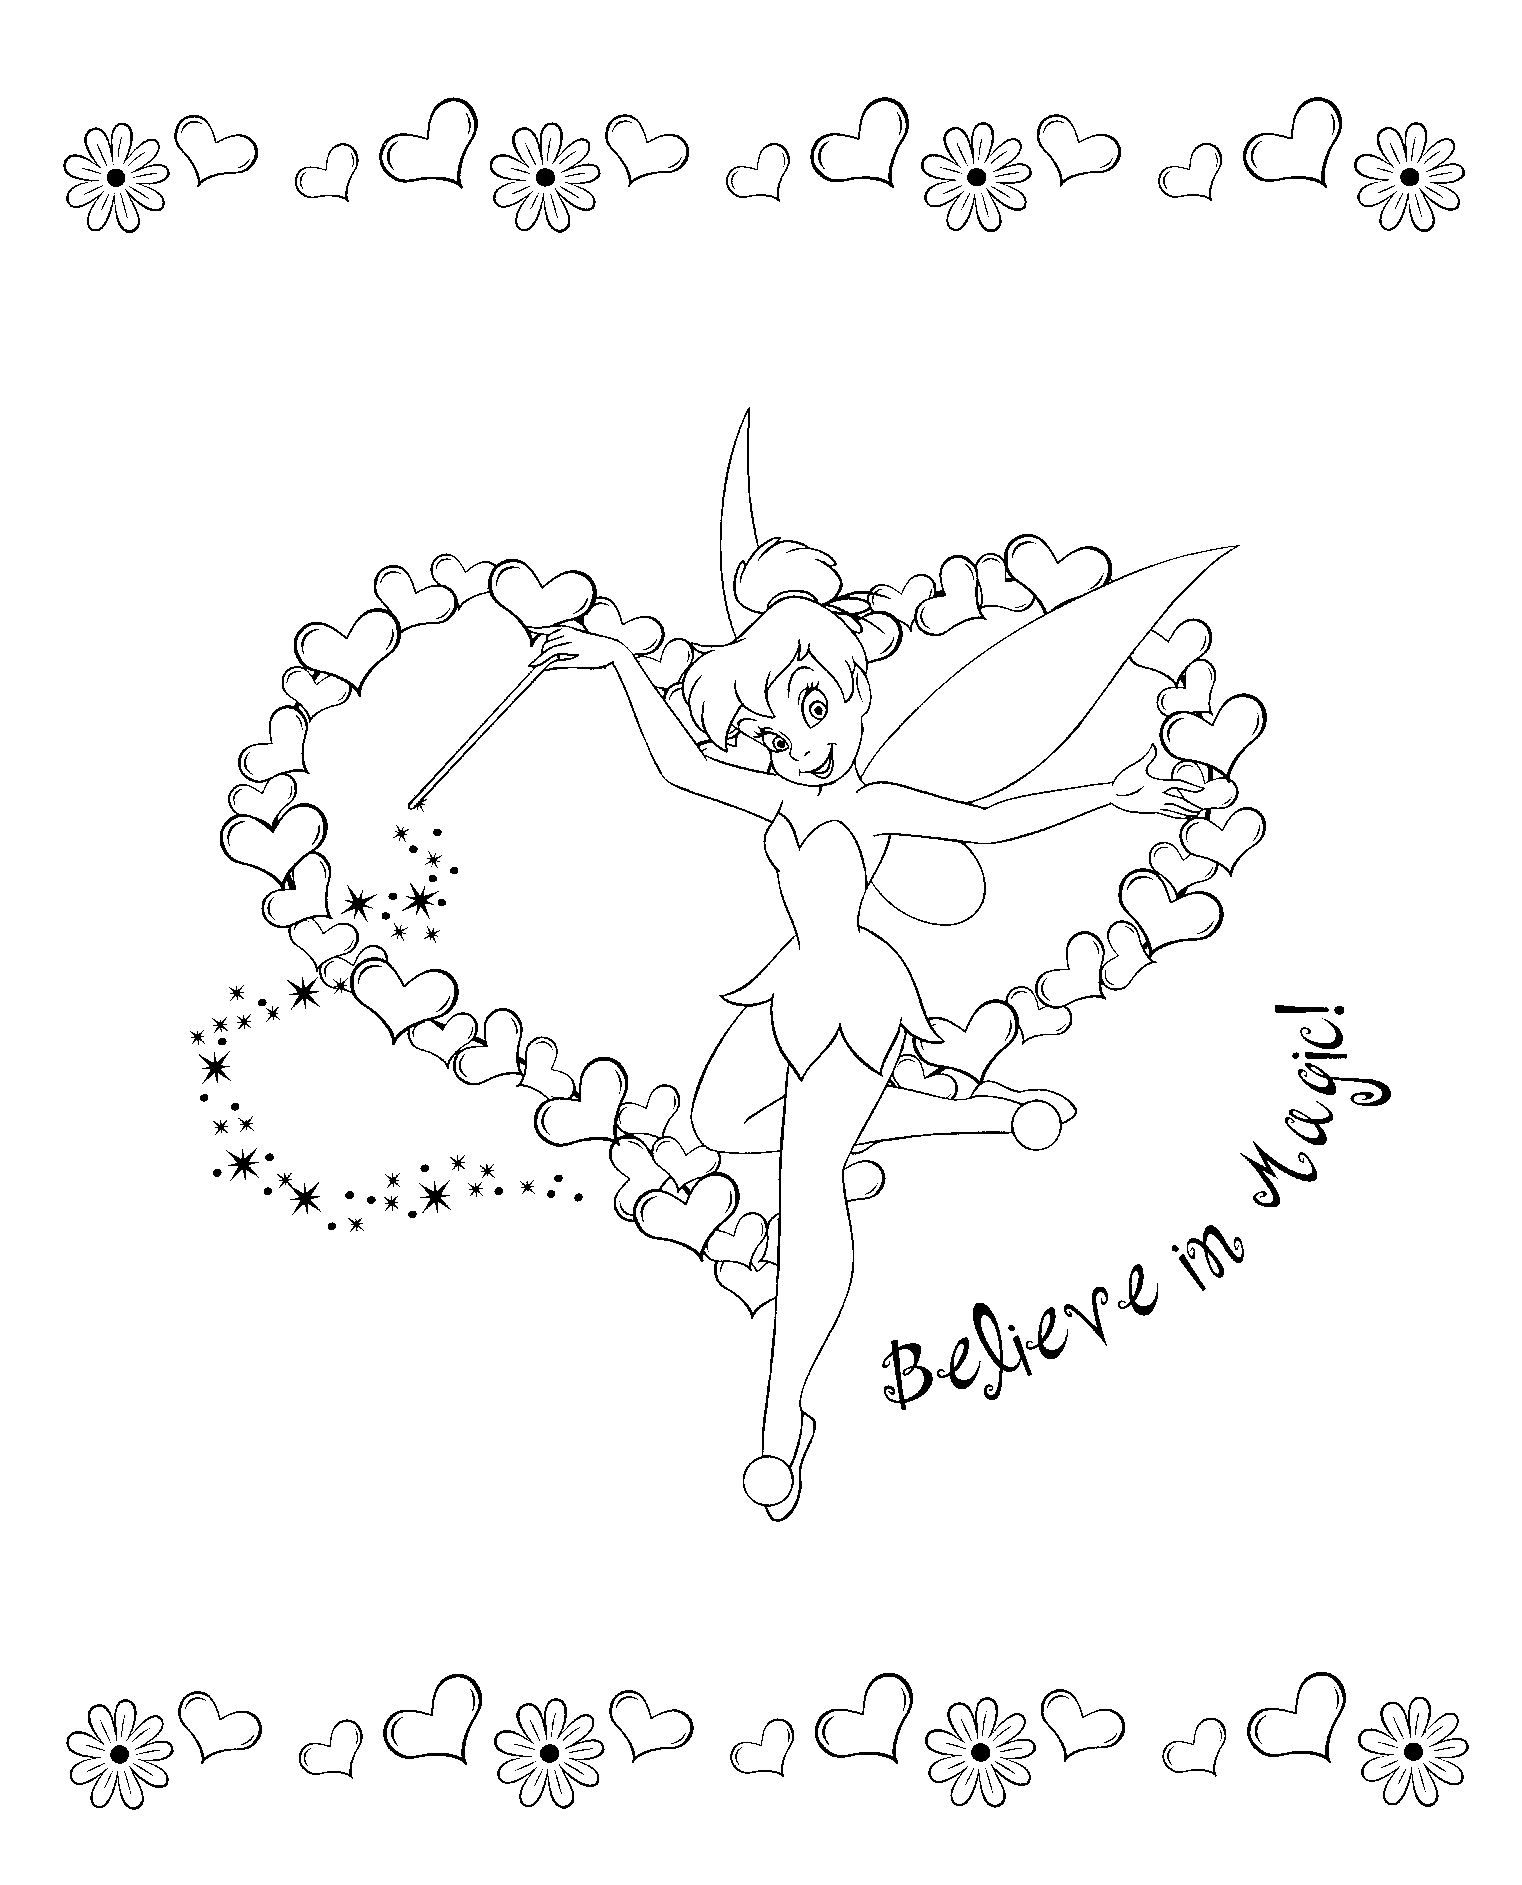 tinkerbell coloring pages tinkerbell coloring pages pinterest